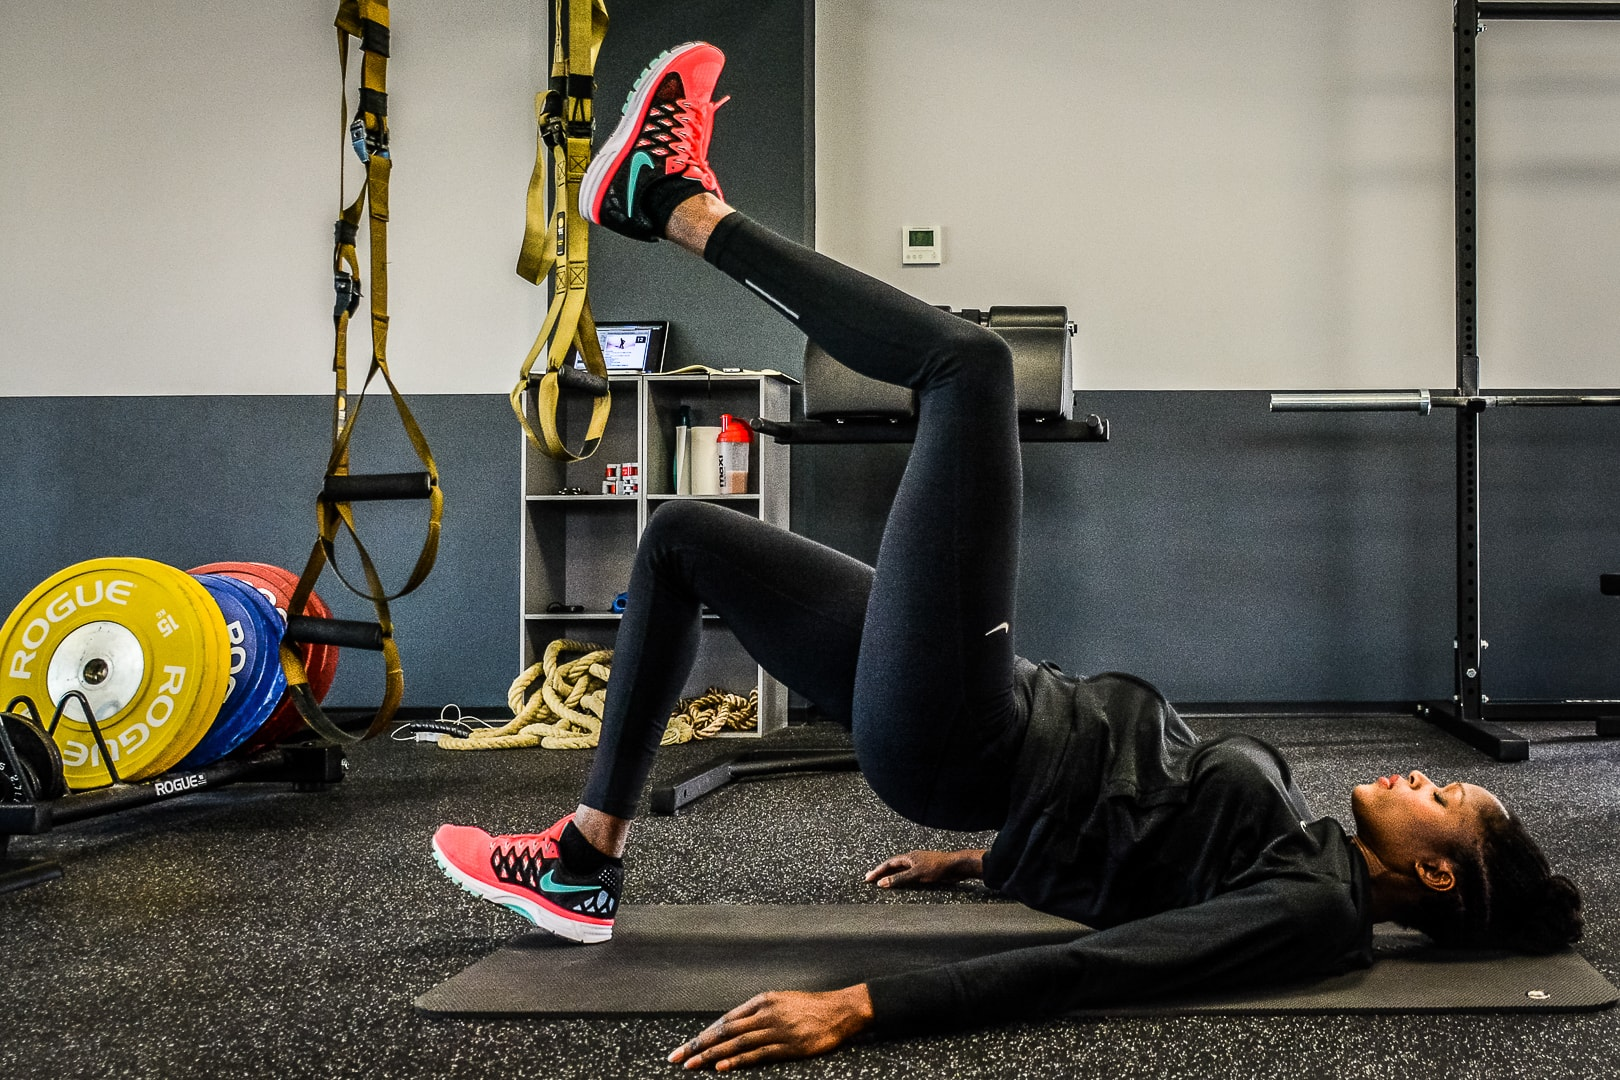 trezors-photography-photographe-professionnel-toulouse-31-sport-lifestyle-fitness (2)